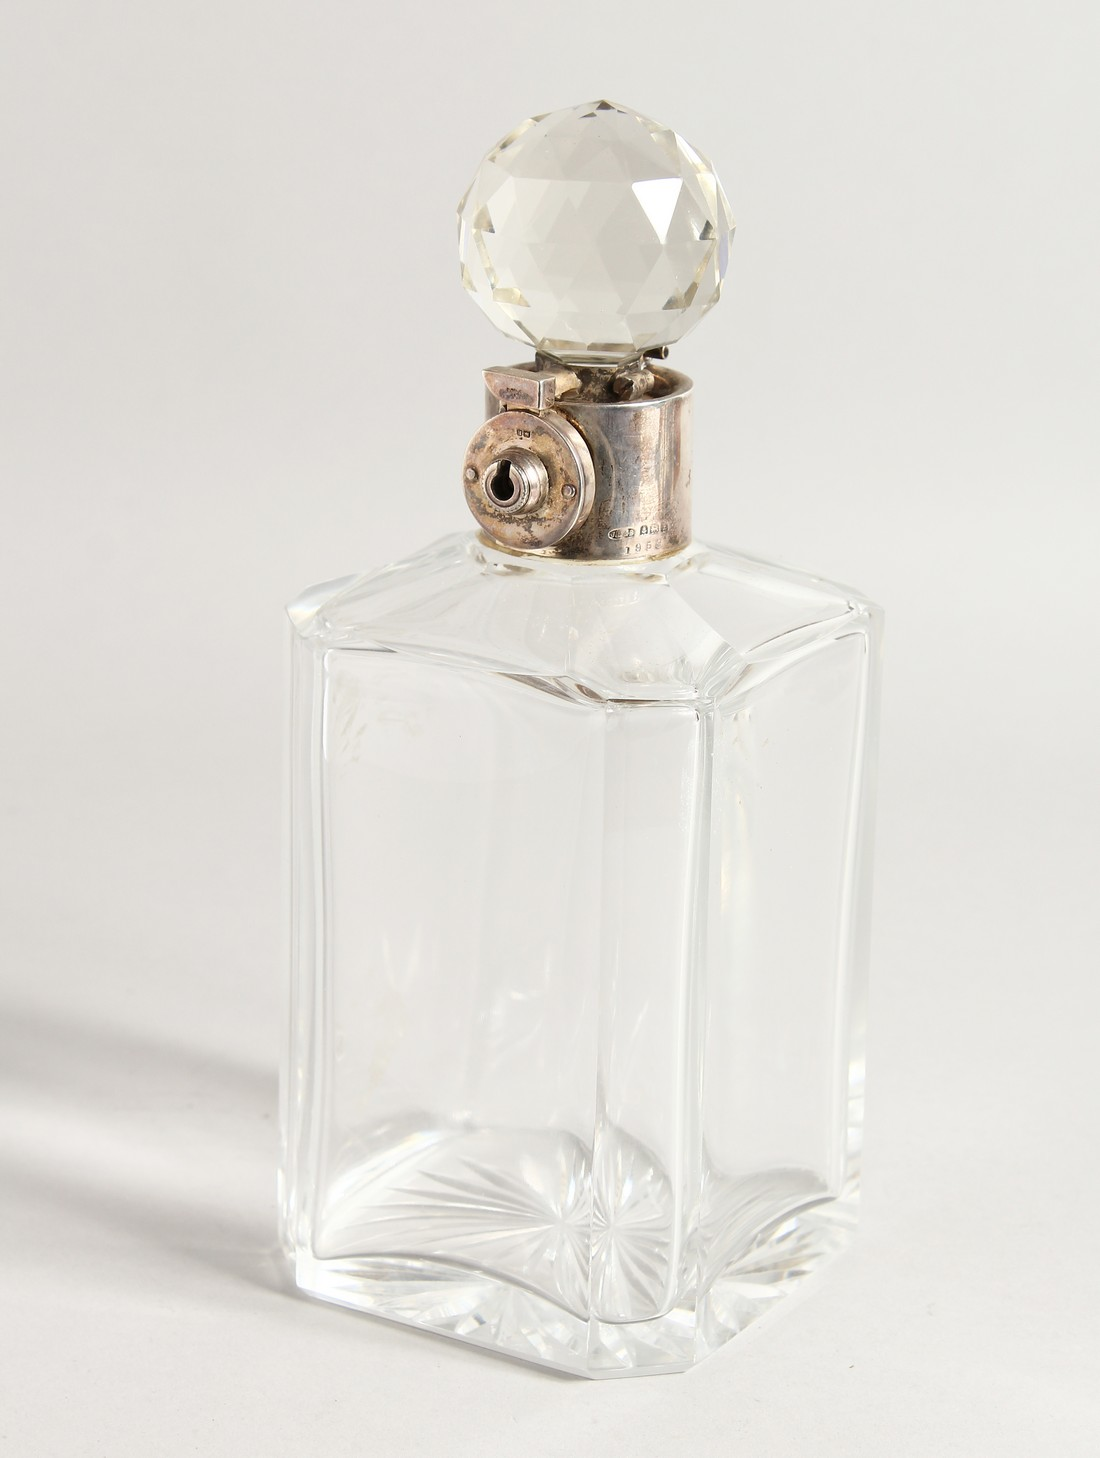 A HEAVY SQUARE GLASS WHISKY DECANTER AND STOPPER with silver band.